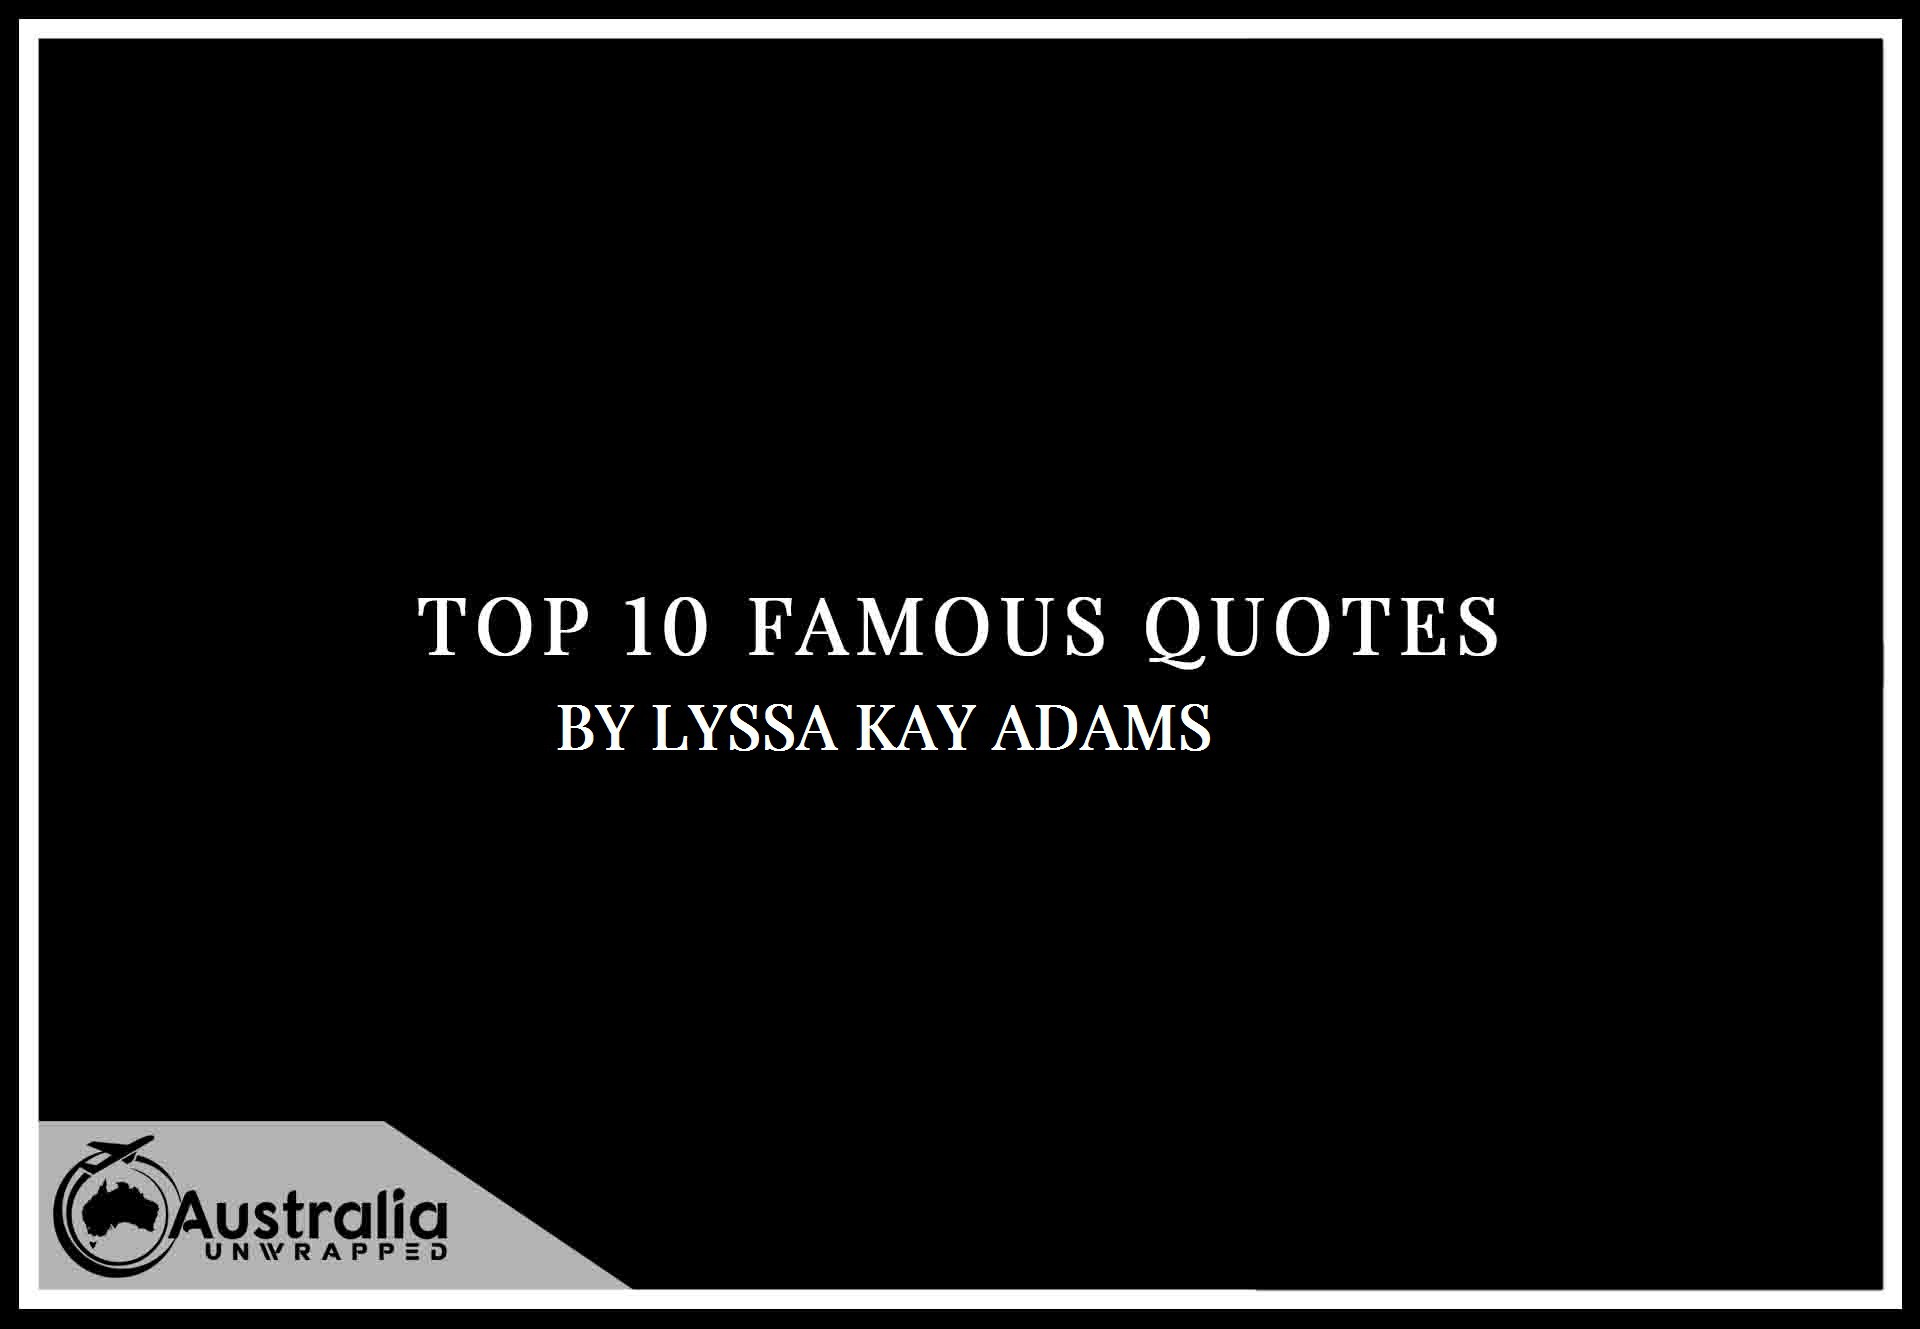 Lyssa Kay Adams's Top 10 Popular and Famous Quotes